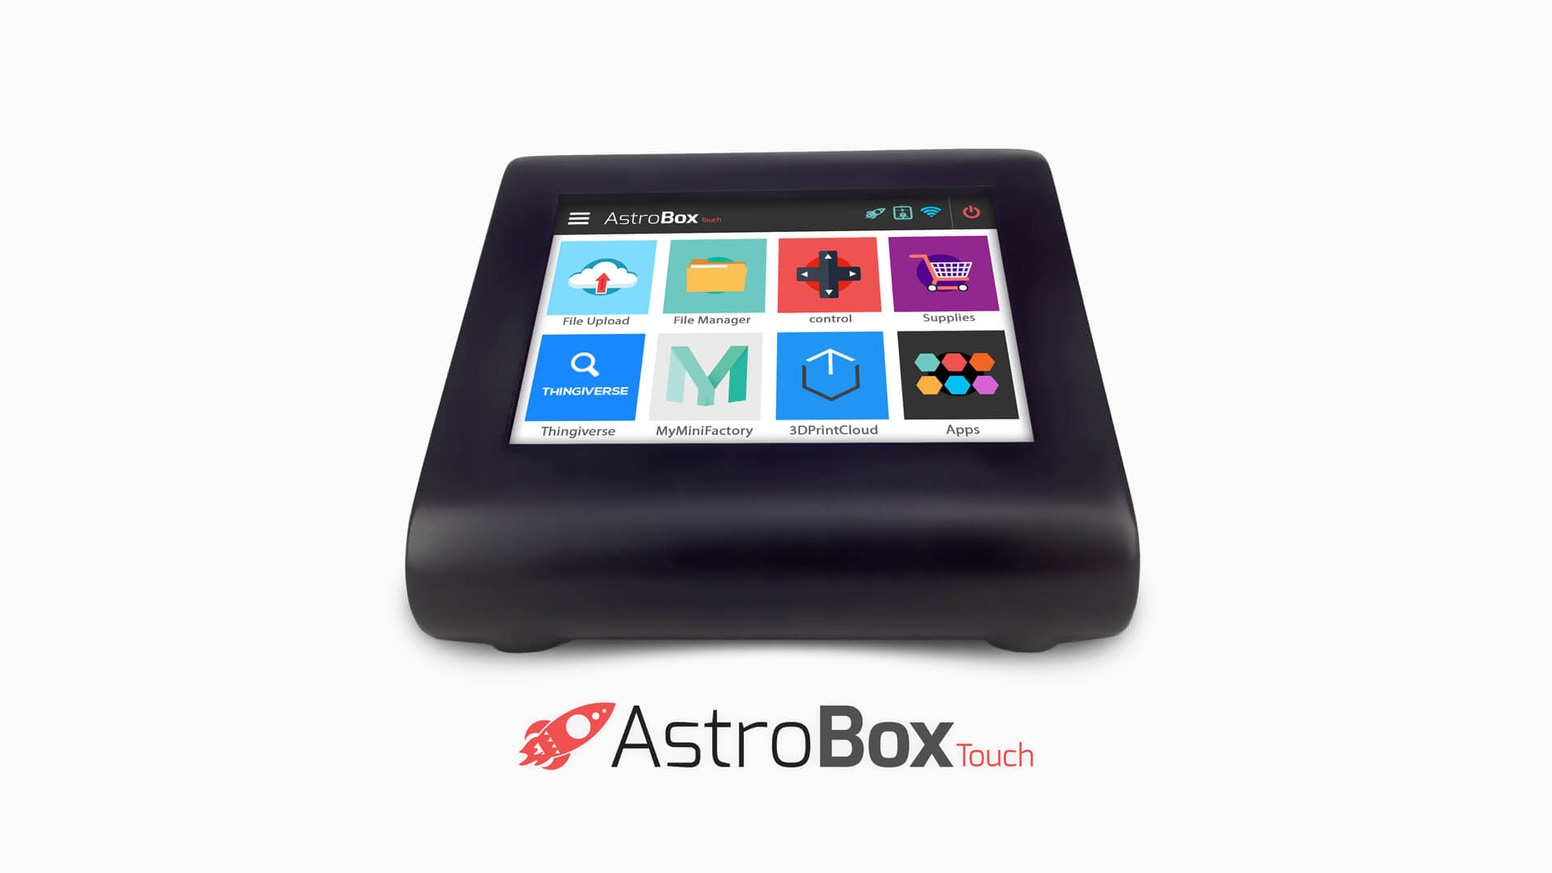 The AstroBox Touch is a simple, powerful touchscreen that is wireless, cloud connected, and infinitely extensible with apps.